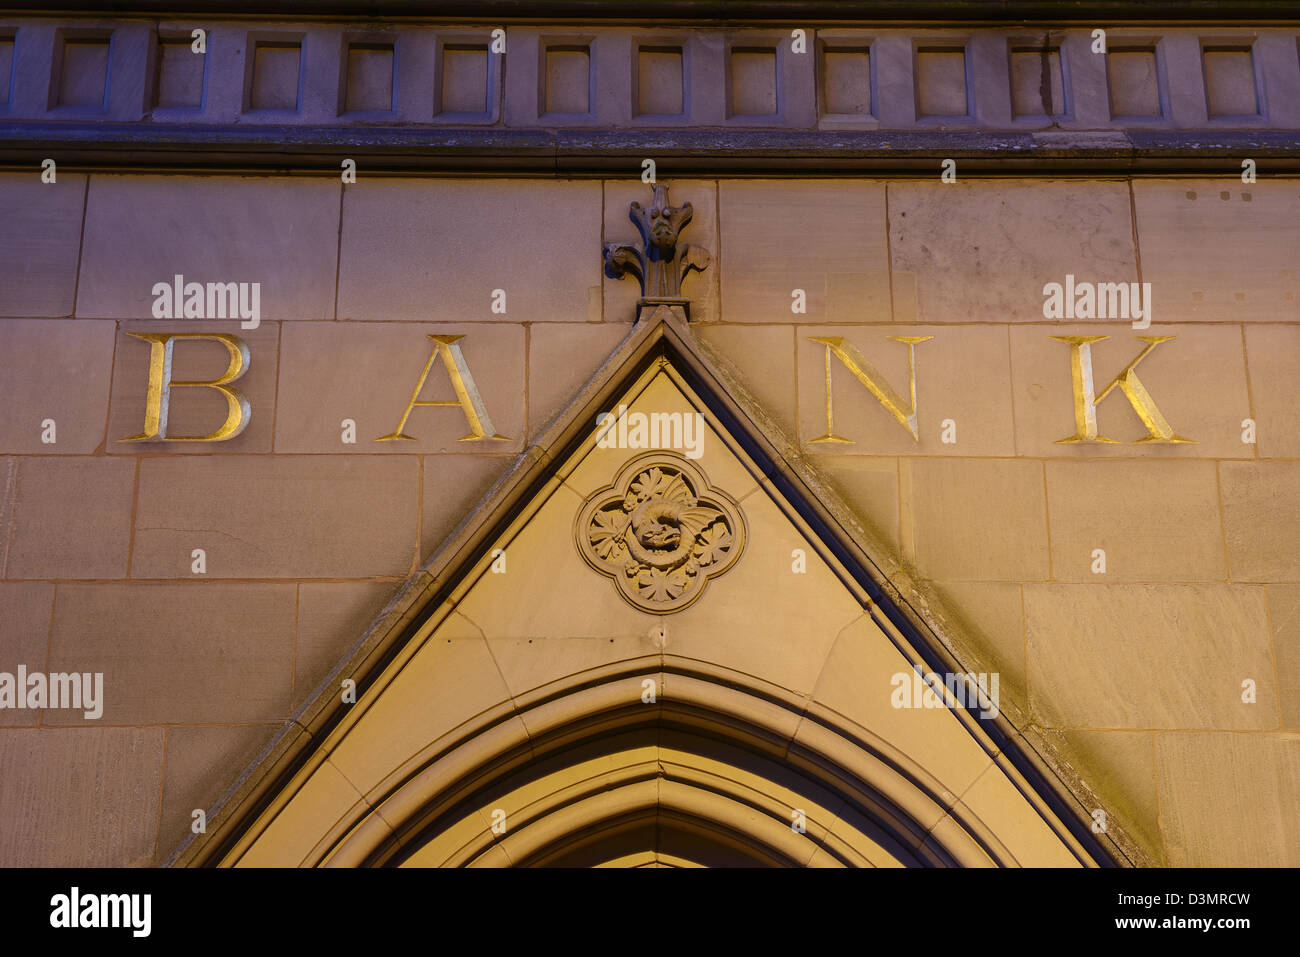 BANK carved into a wall above a doorway - Stock Image